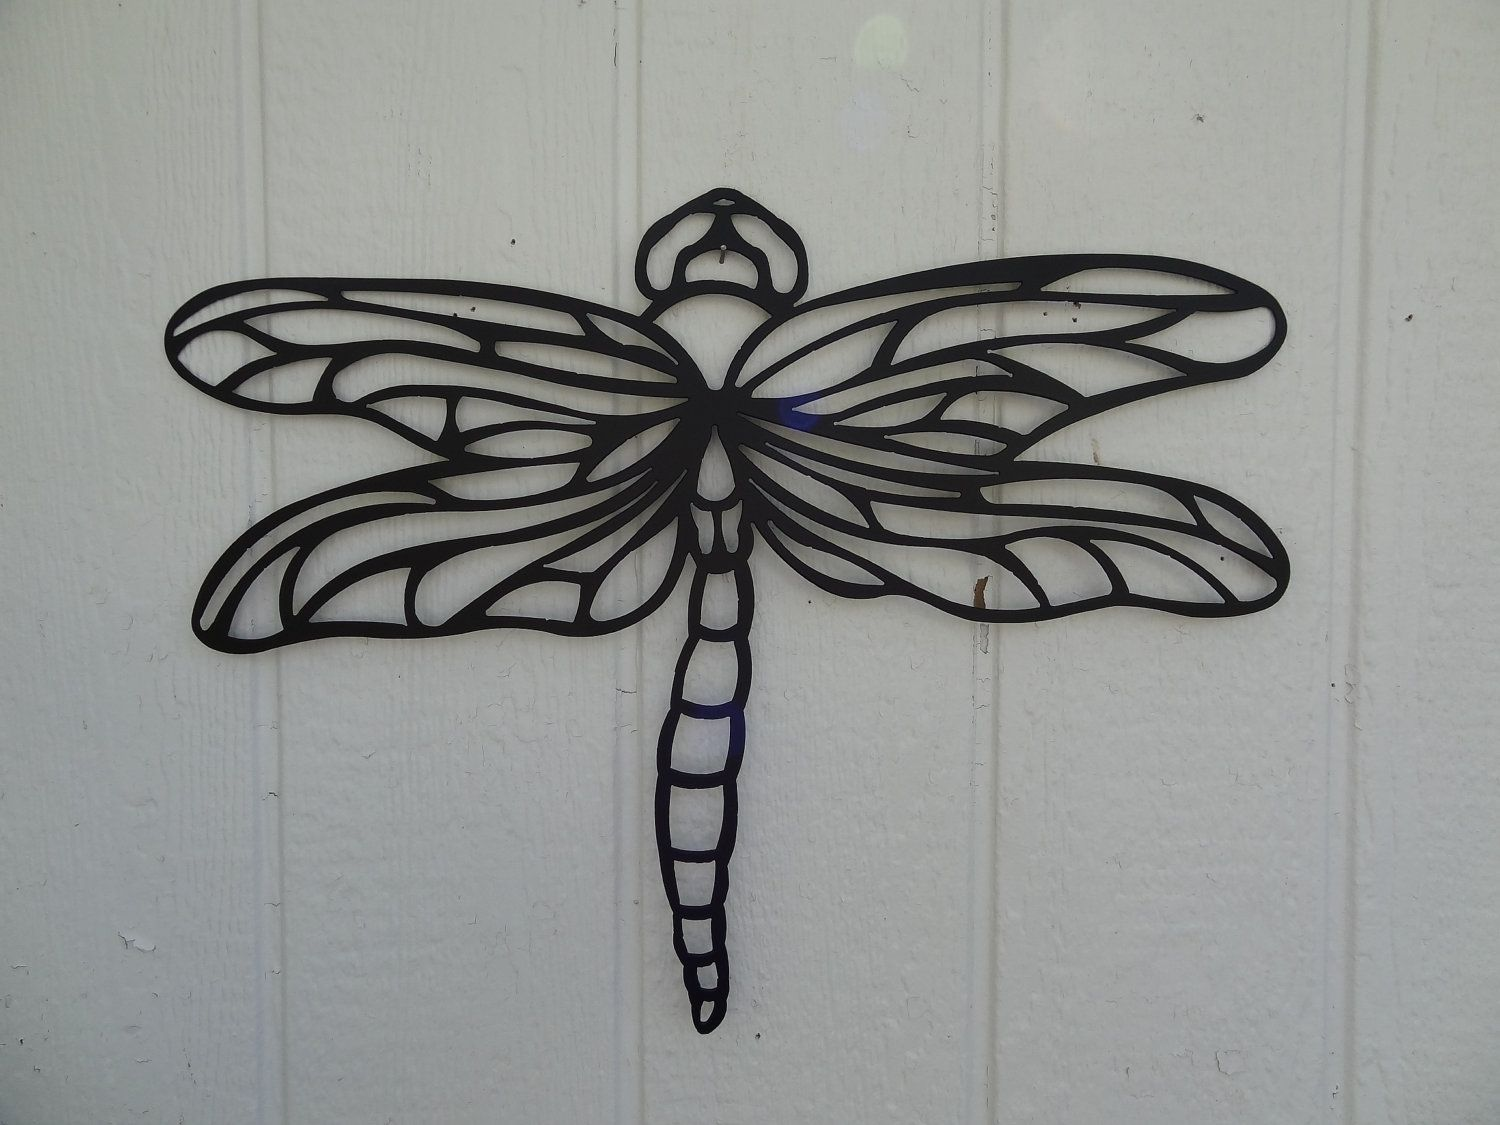 Custom Dragonfly 2ft Metal Wall Art Home Garden Kitchen Decor By Say It All On The